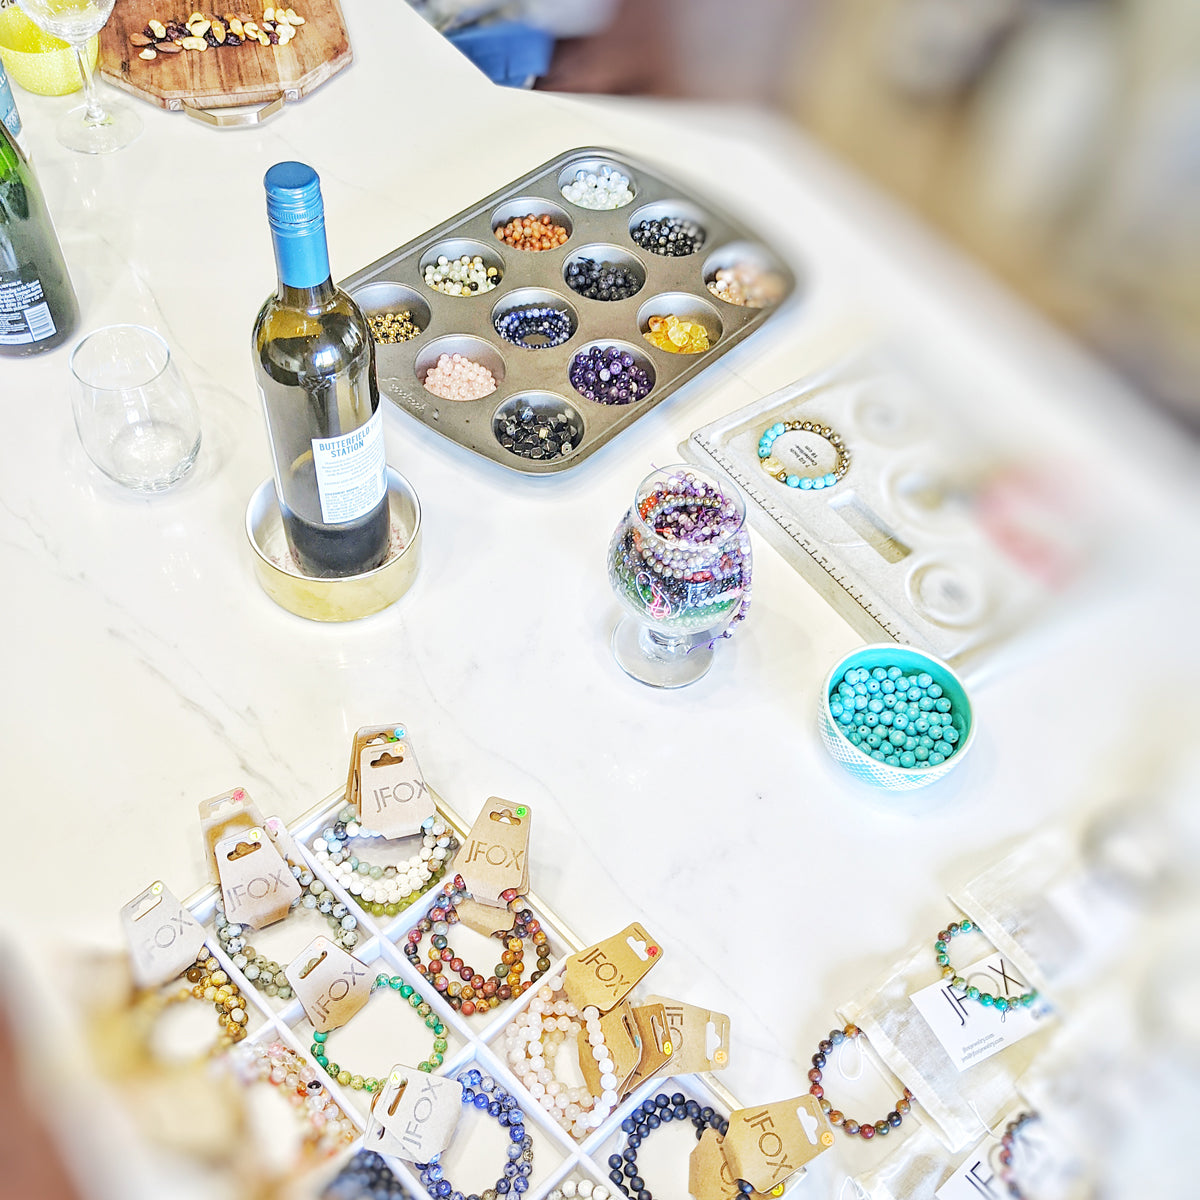 JFOX JEWELRY parties and events